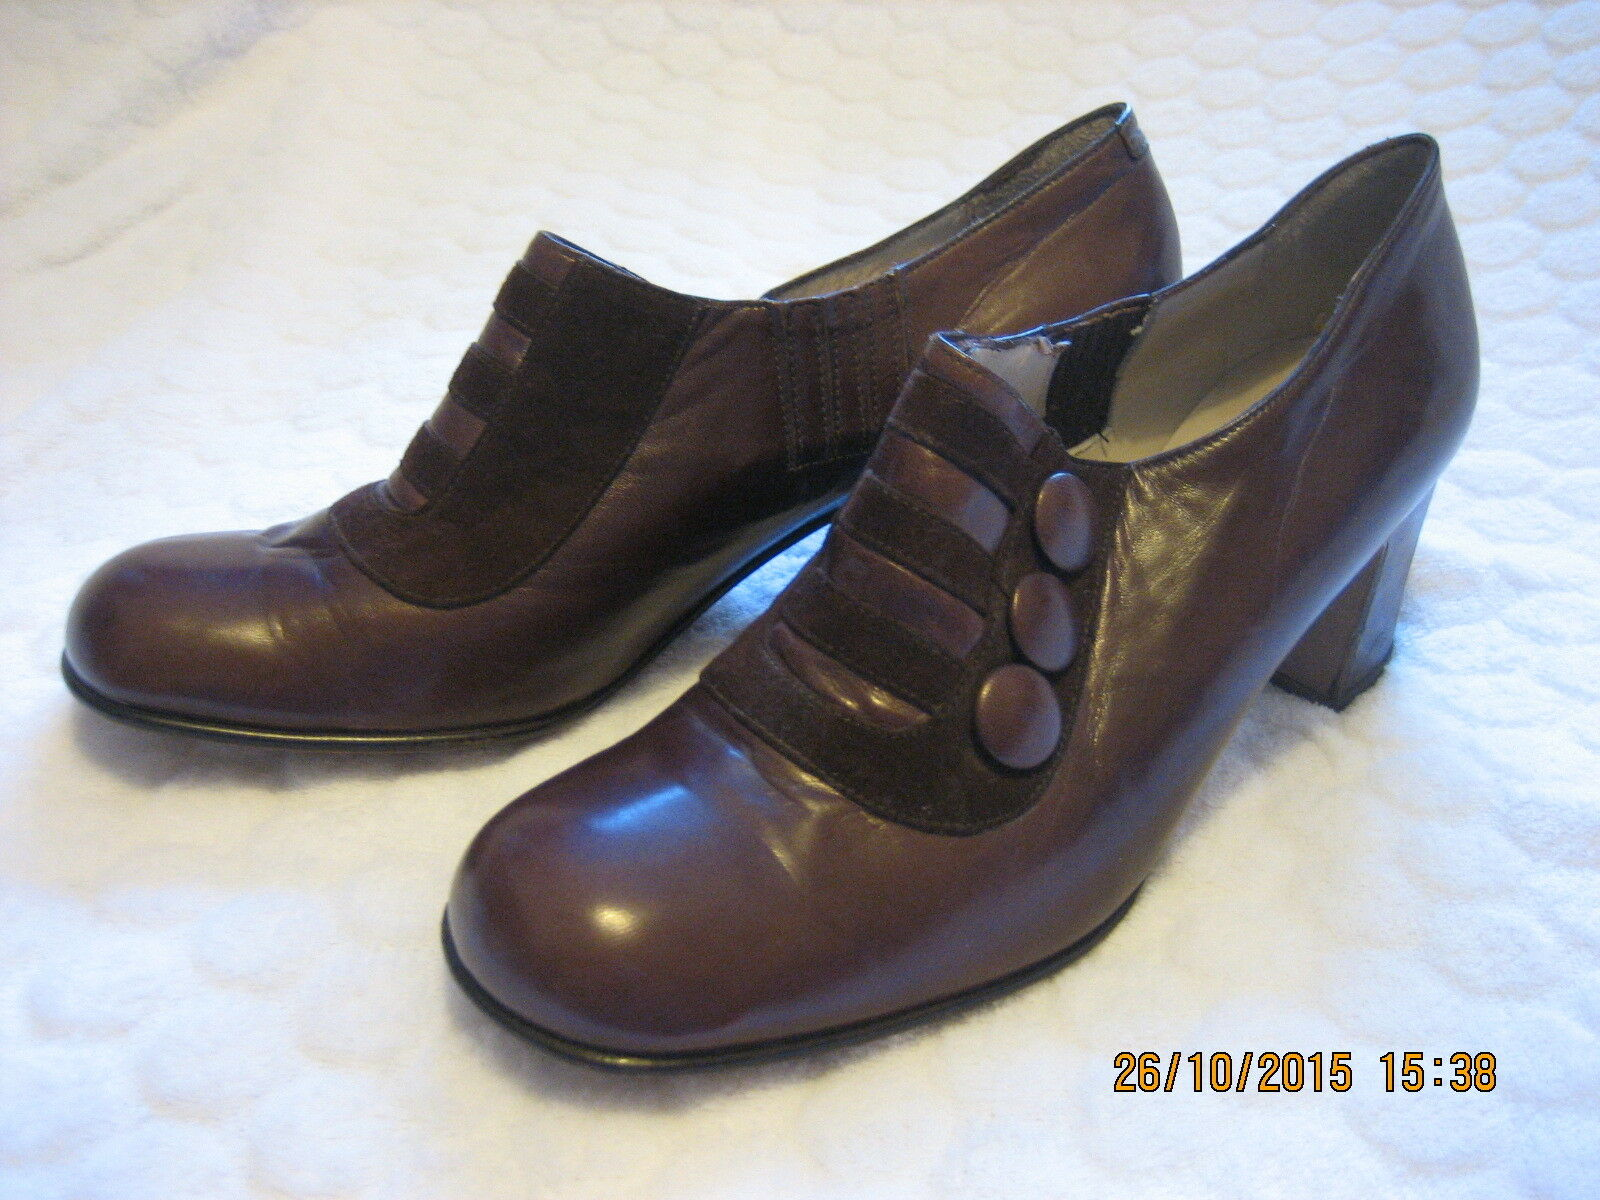 VINTAGE 1970's WOMEN'S BROWN LEATHER ITALIAN Schuhe SIZE 5